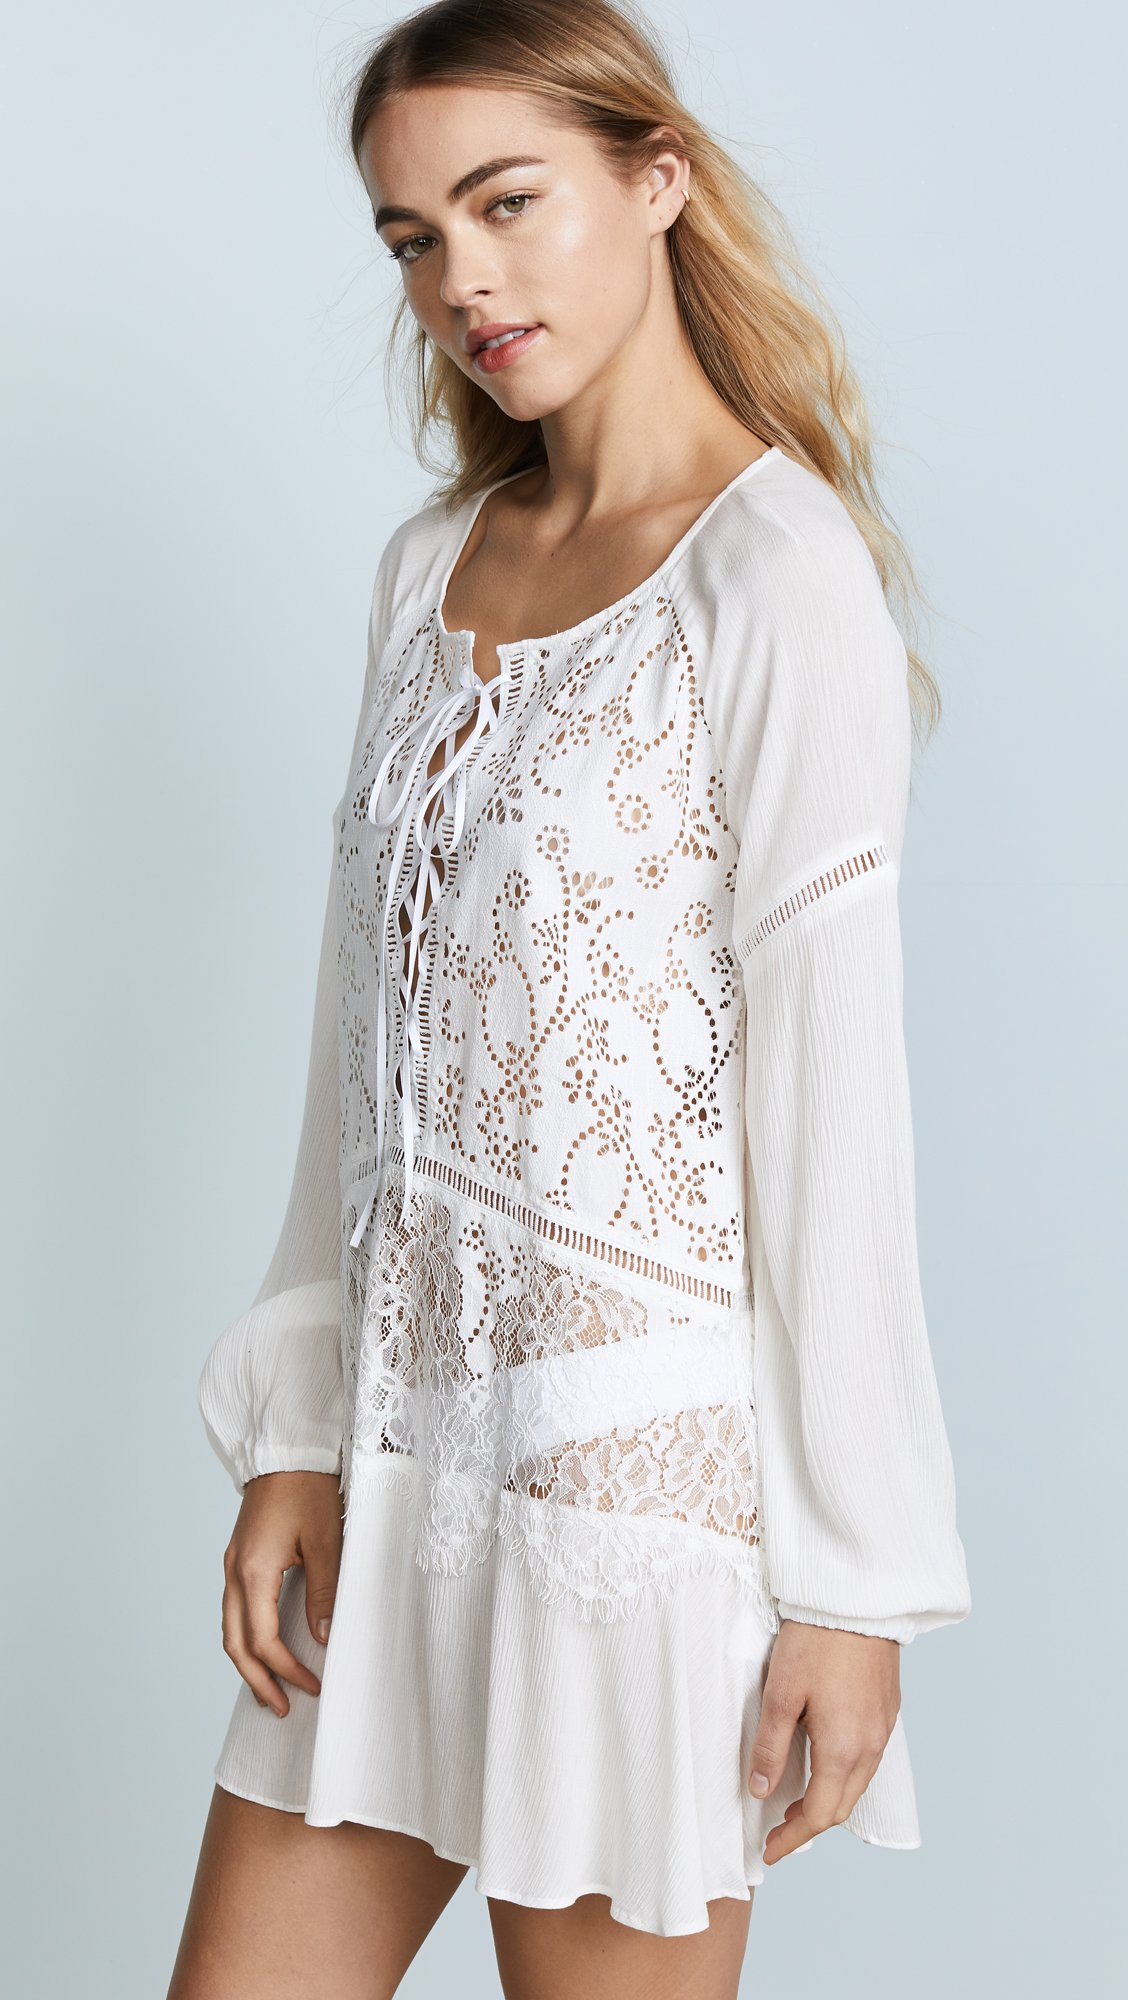 For Love & Lemons Women's Olympia Lace Cover Up Tunic, White, Small by For Love & Lemons (Image #4)